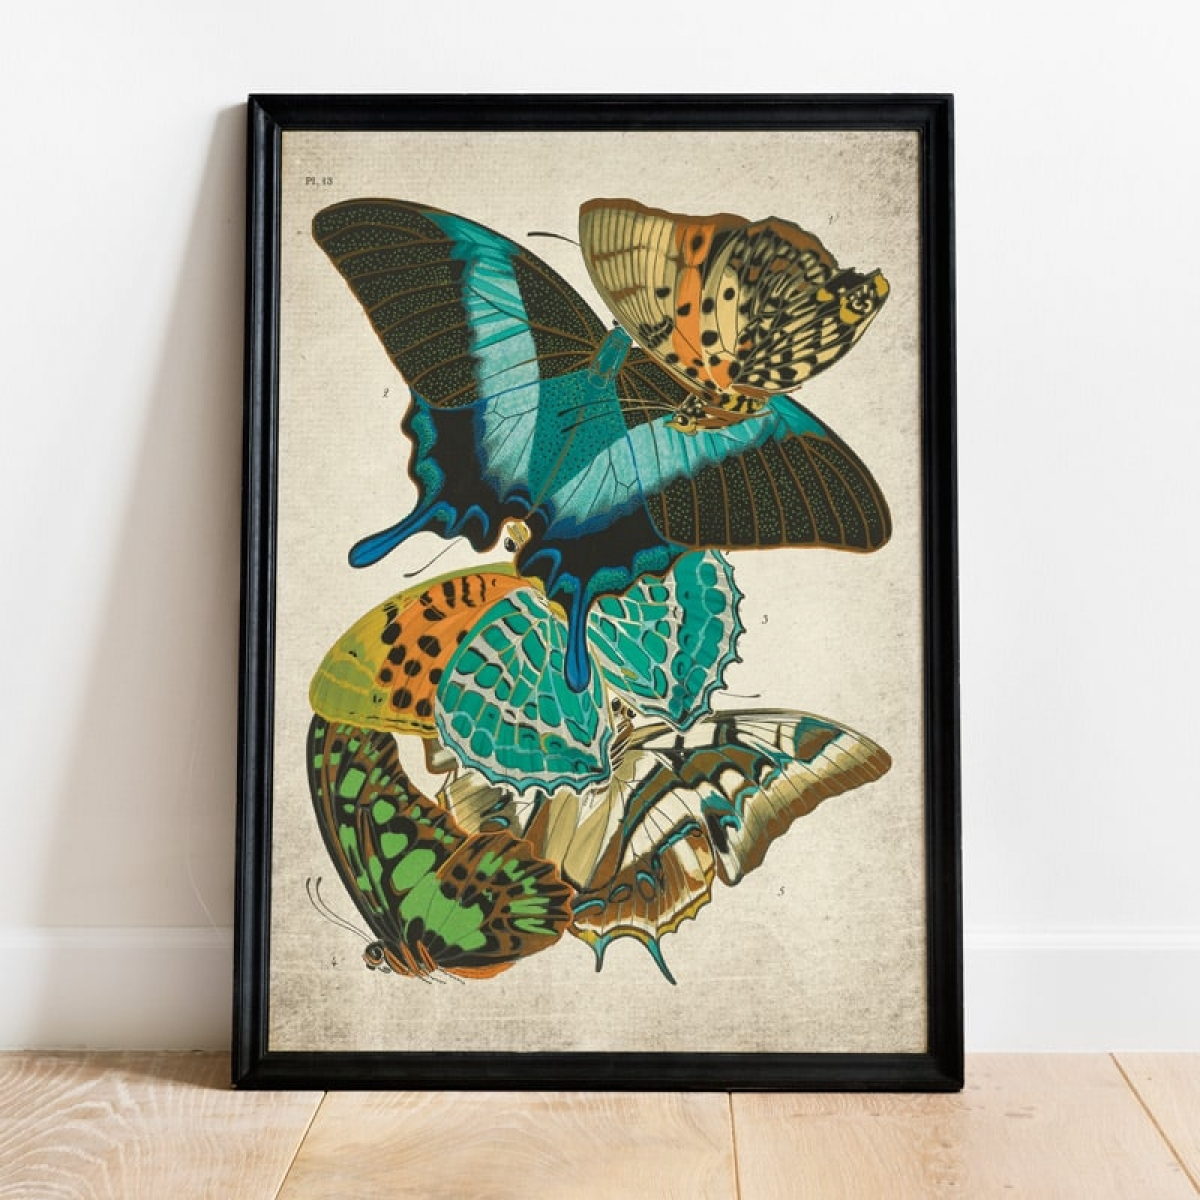 Minibeast Vintage Entomology Giclee Print (Papilio Scene #10 from 1925)